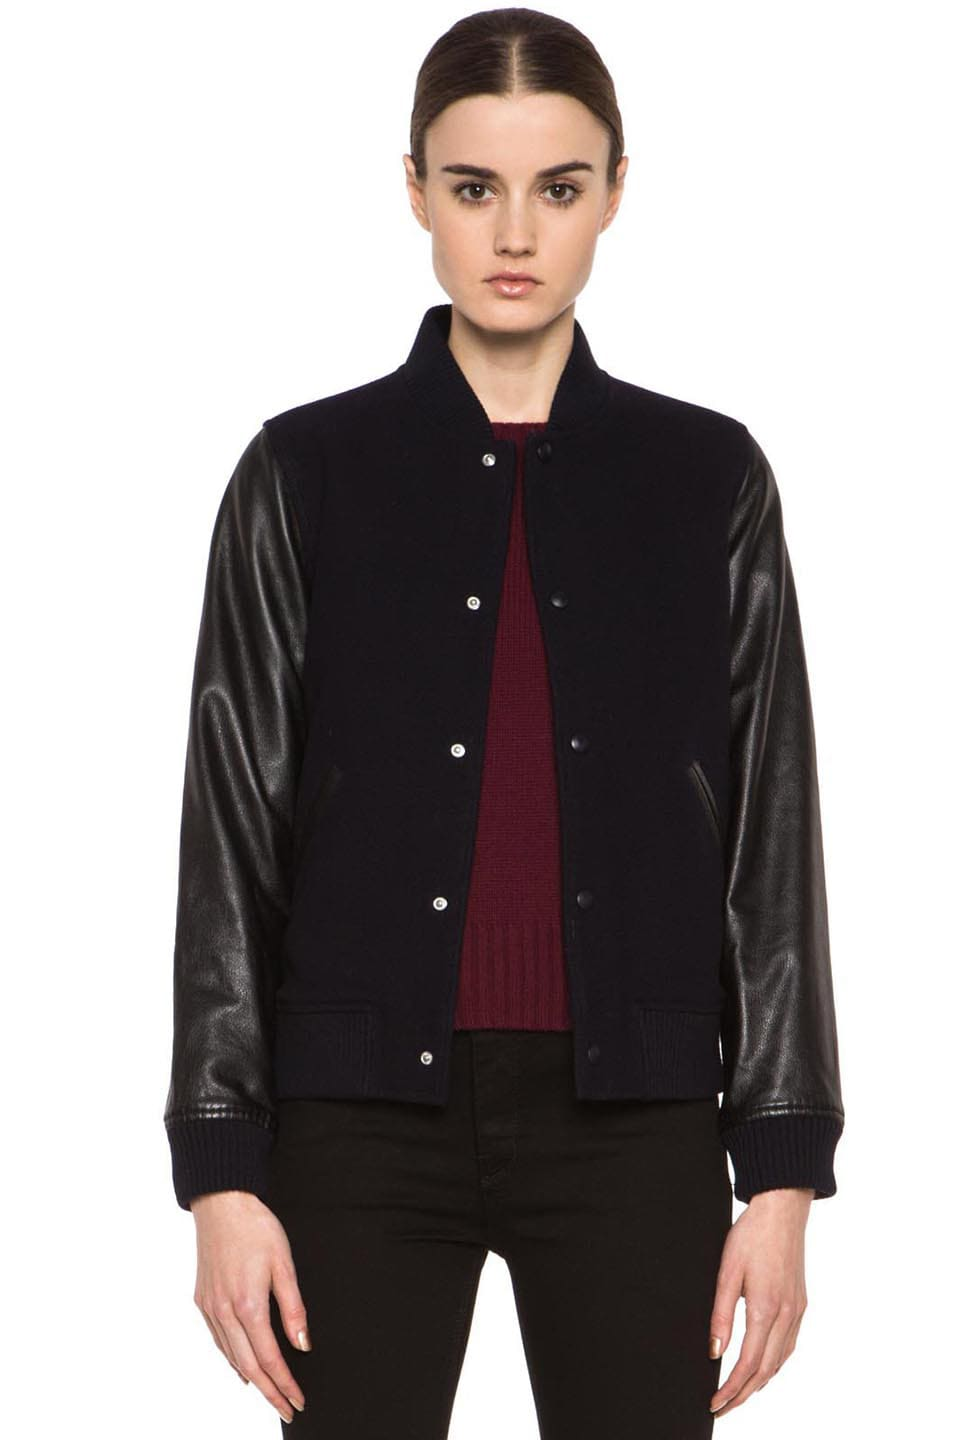 Image 1 of A.P.C. Teddy Rizzo Wool-Blend Leather Baseball Jacket in Dark Navy